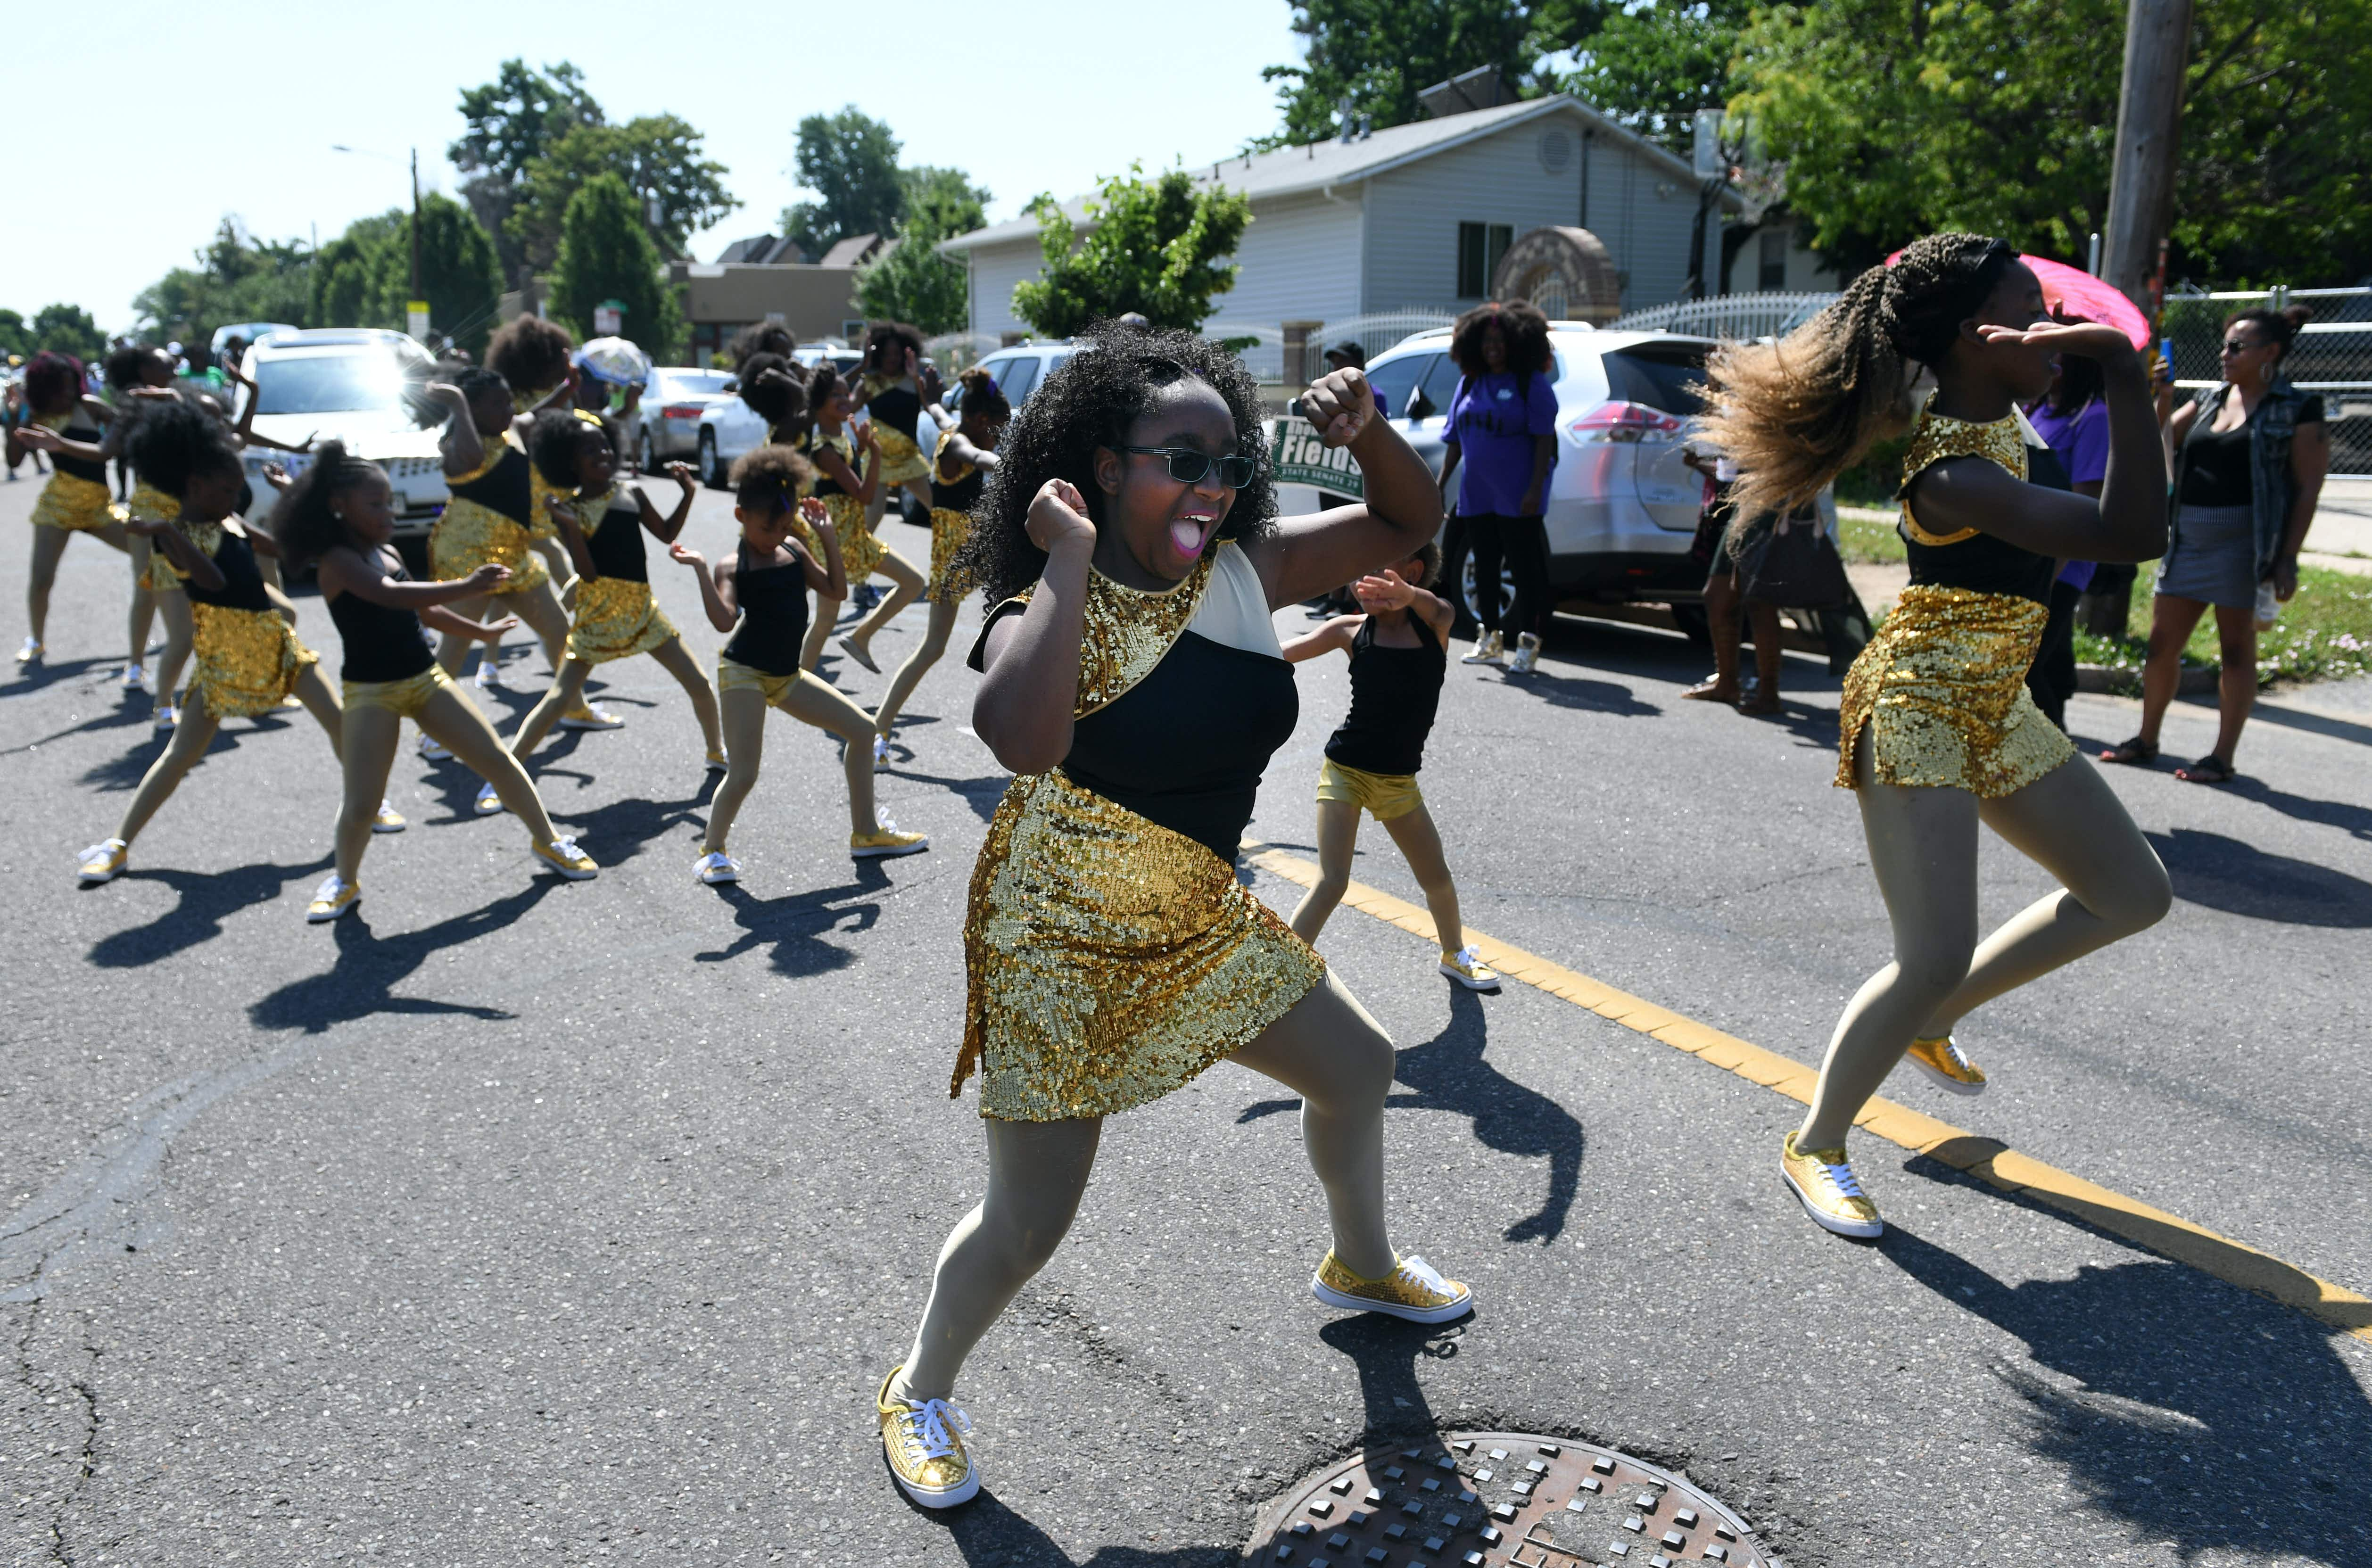 DENVER, CO - JUNE 18: Members of the DNA Dance Company make their way down E. 26th Ave. The 2016 Juneteenth Parade begins near Manuel High School in Denver and ends in the Five Points neighborhood for a festival. Juneteenth is the oldest known celebration